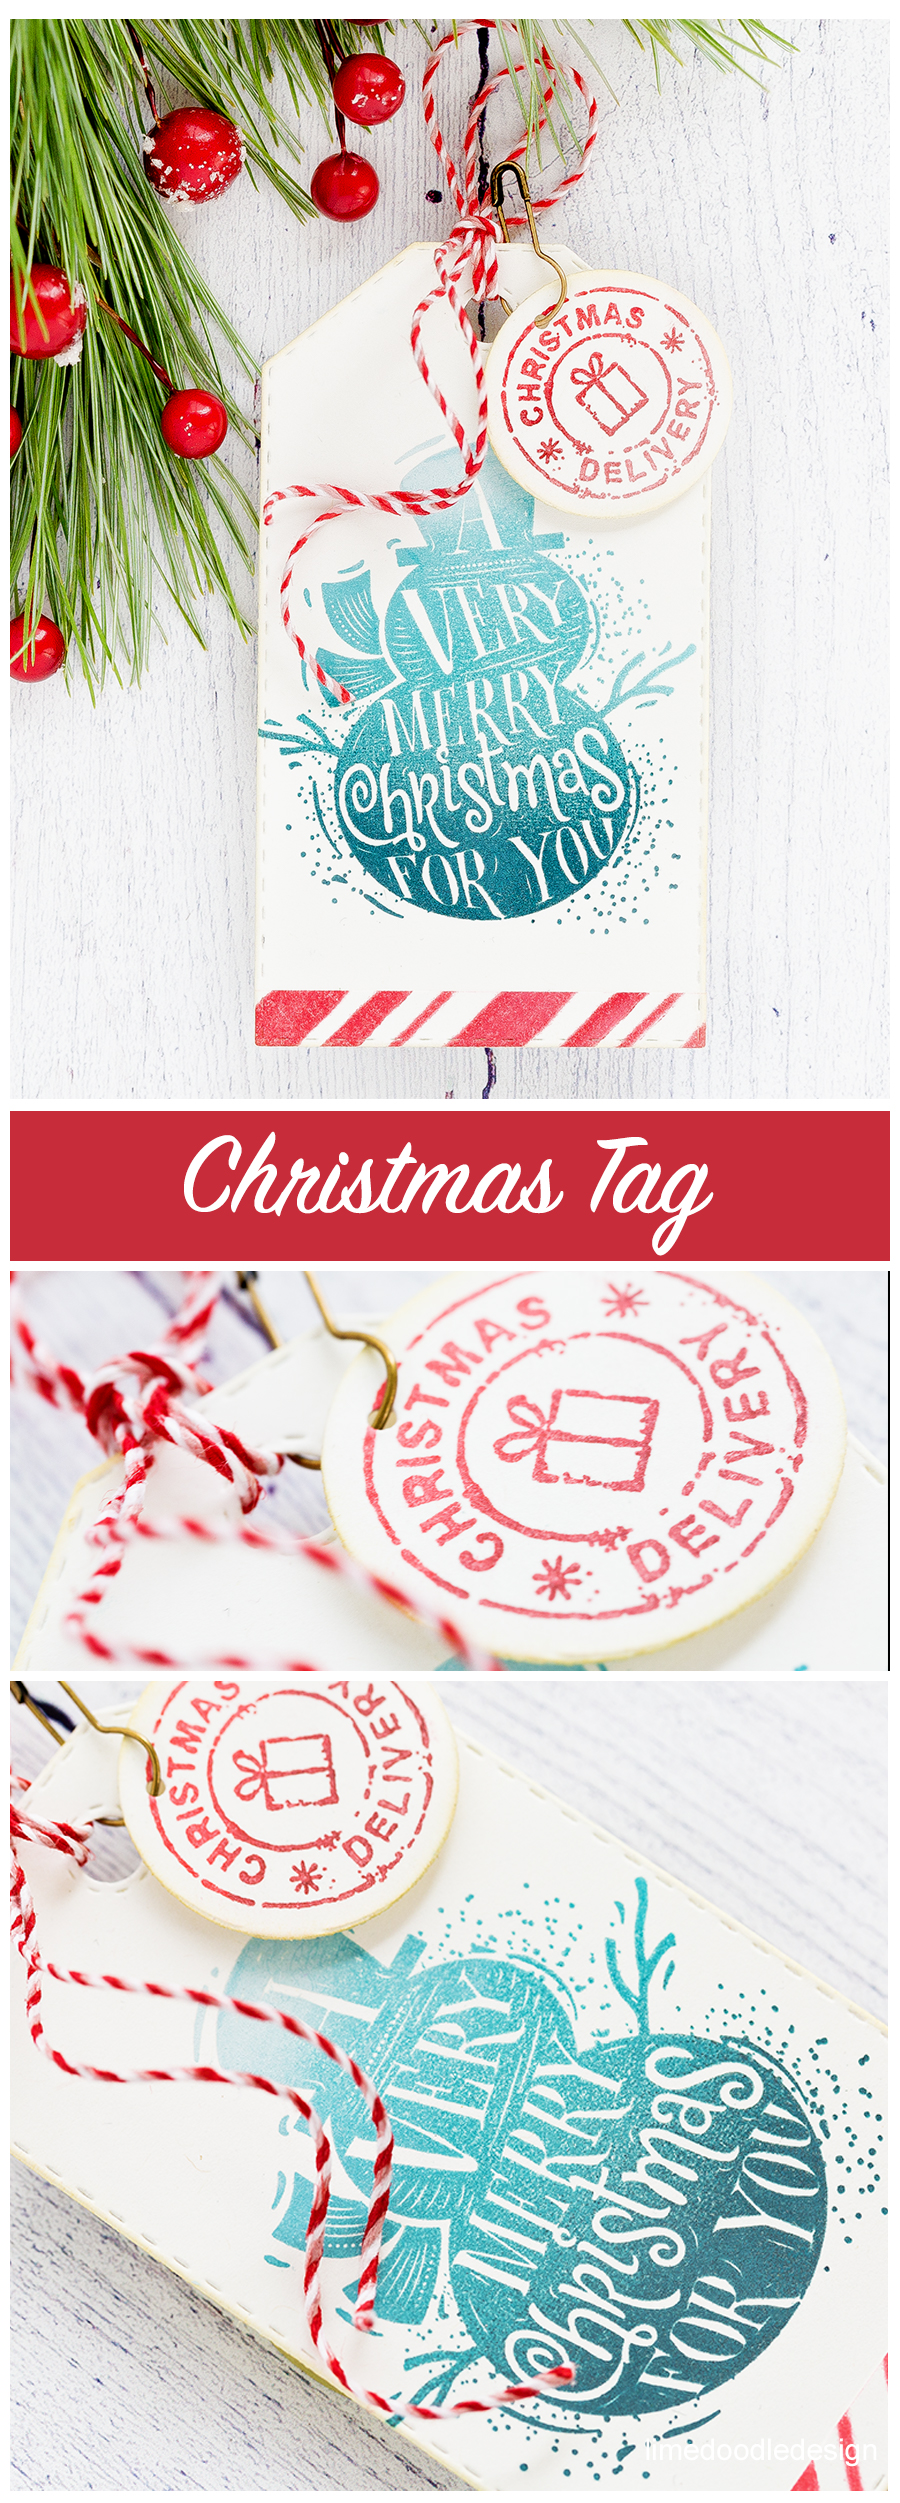 Watercoloured Holiday handmade card and stamped Holiday tag by Debby Hughes using the new Tim Holtz Stampers Anonymous STAMPtember 2017 stamp and stencil set. Find out more here: http://limedoodledesign.com/2017/09/tim-holtz-stampers-anonymous-stamptember-winner/